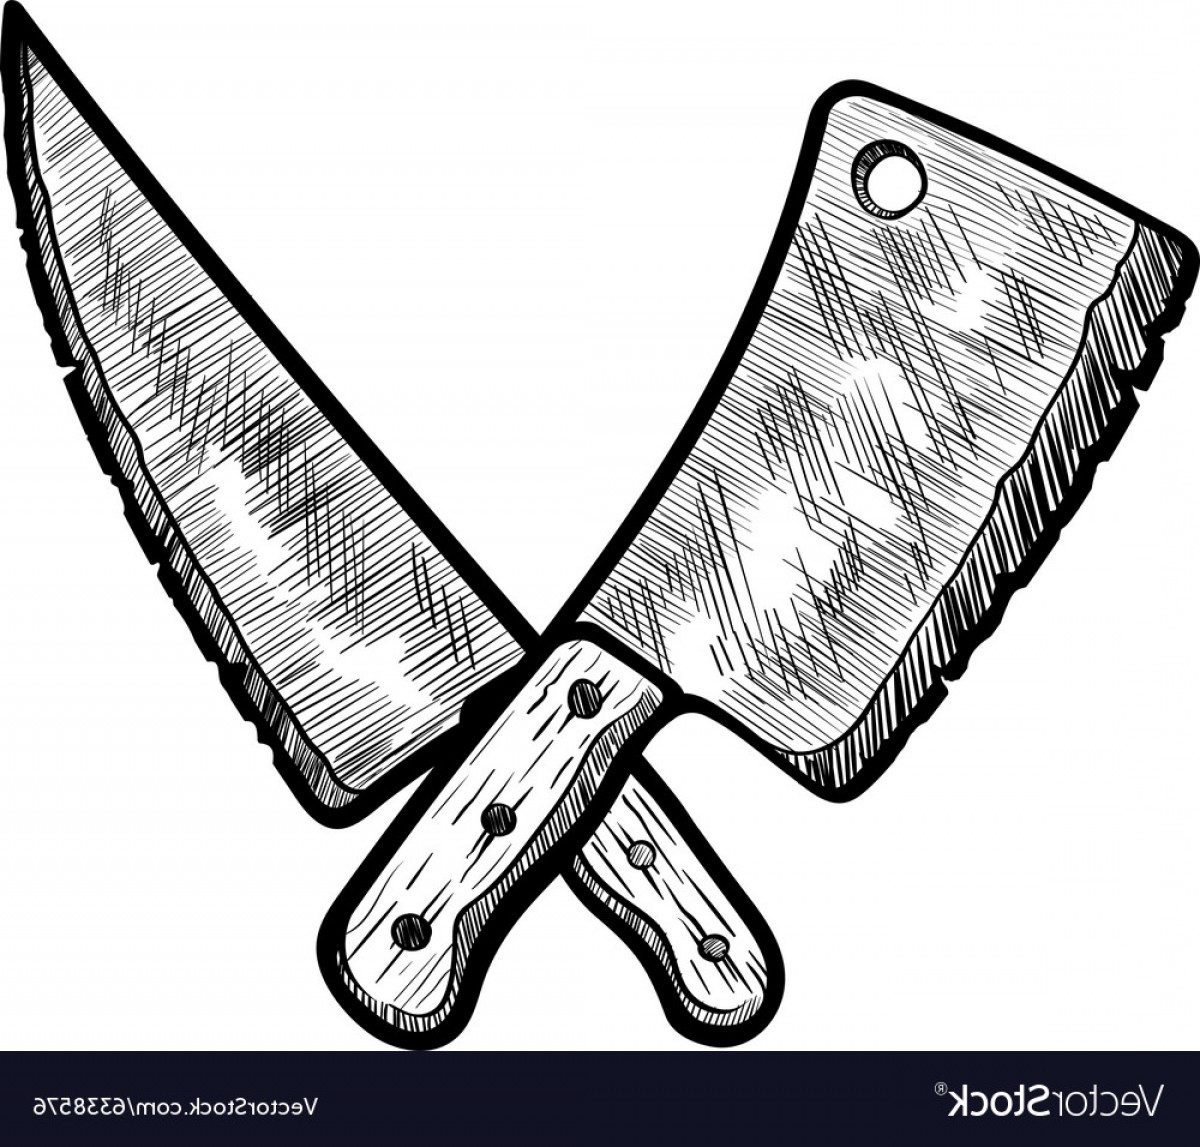 Butcher Knife Vector: Meat Clever And Butcher Knife Vector